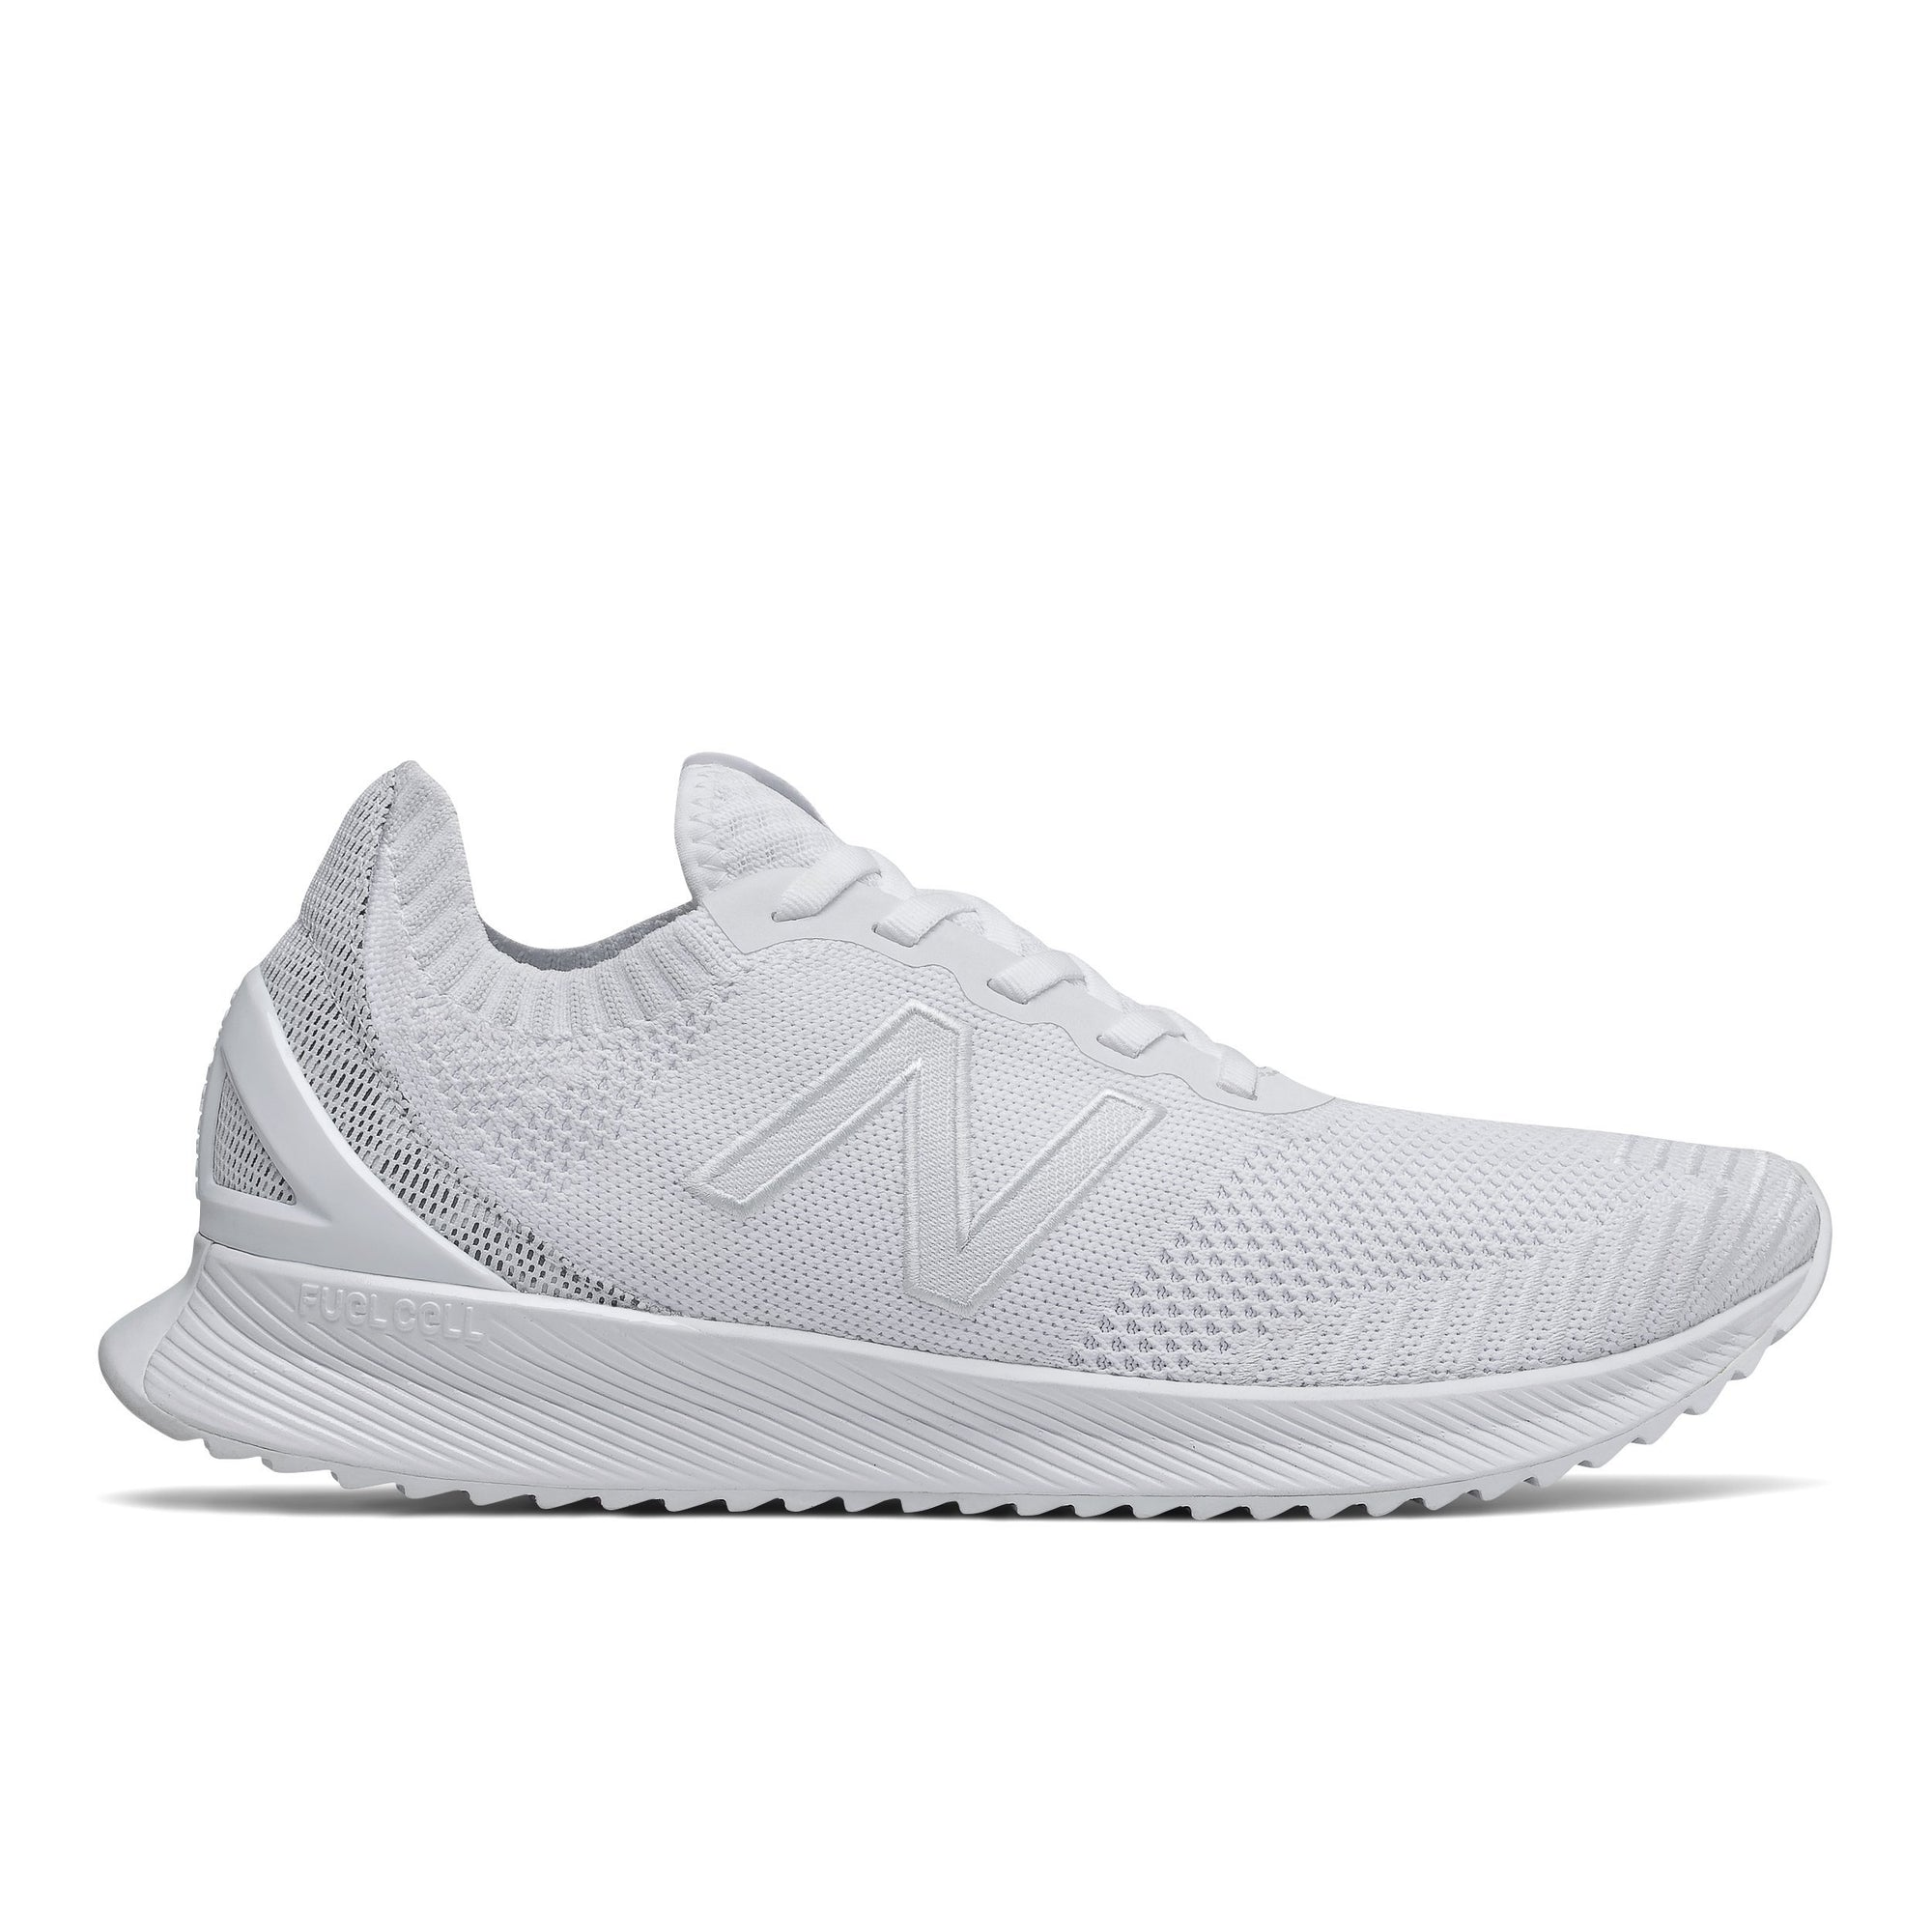 New Balance Womens FuelCell Echo - Triple White SP-Footwear-Womens New Balance